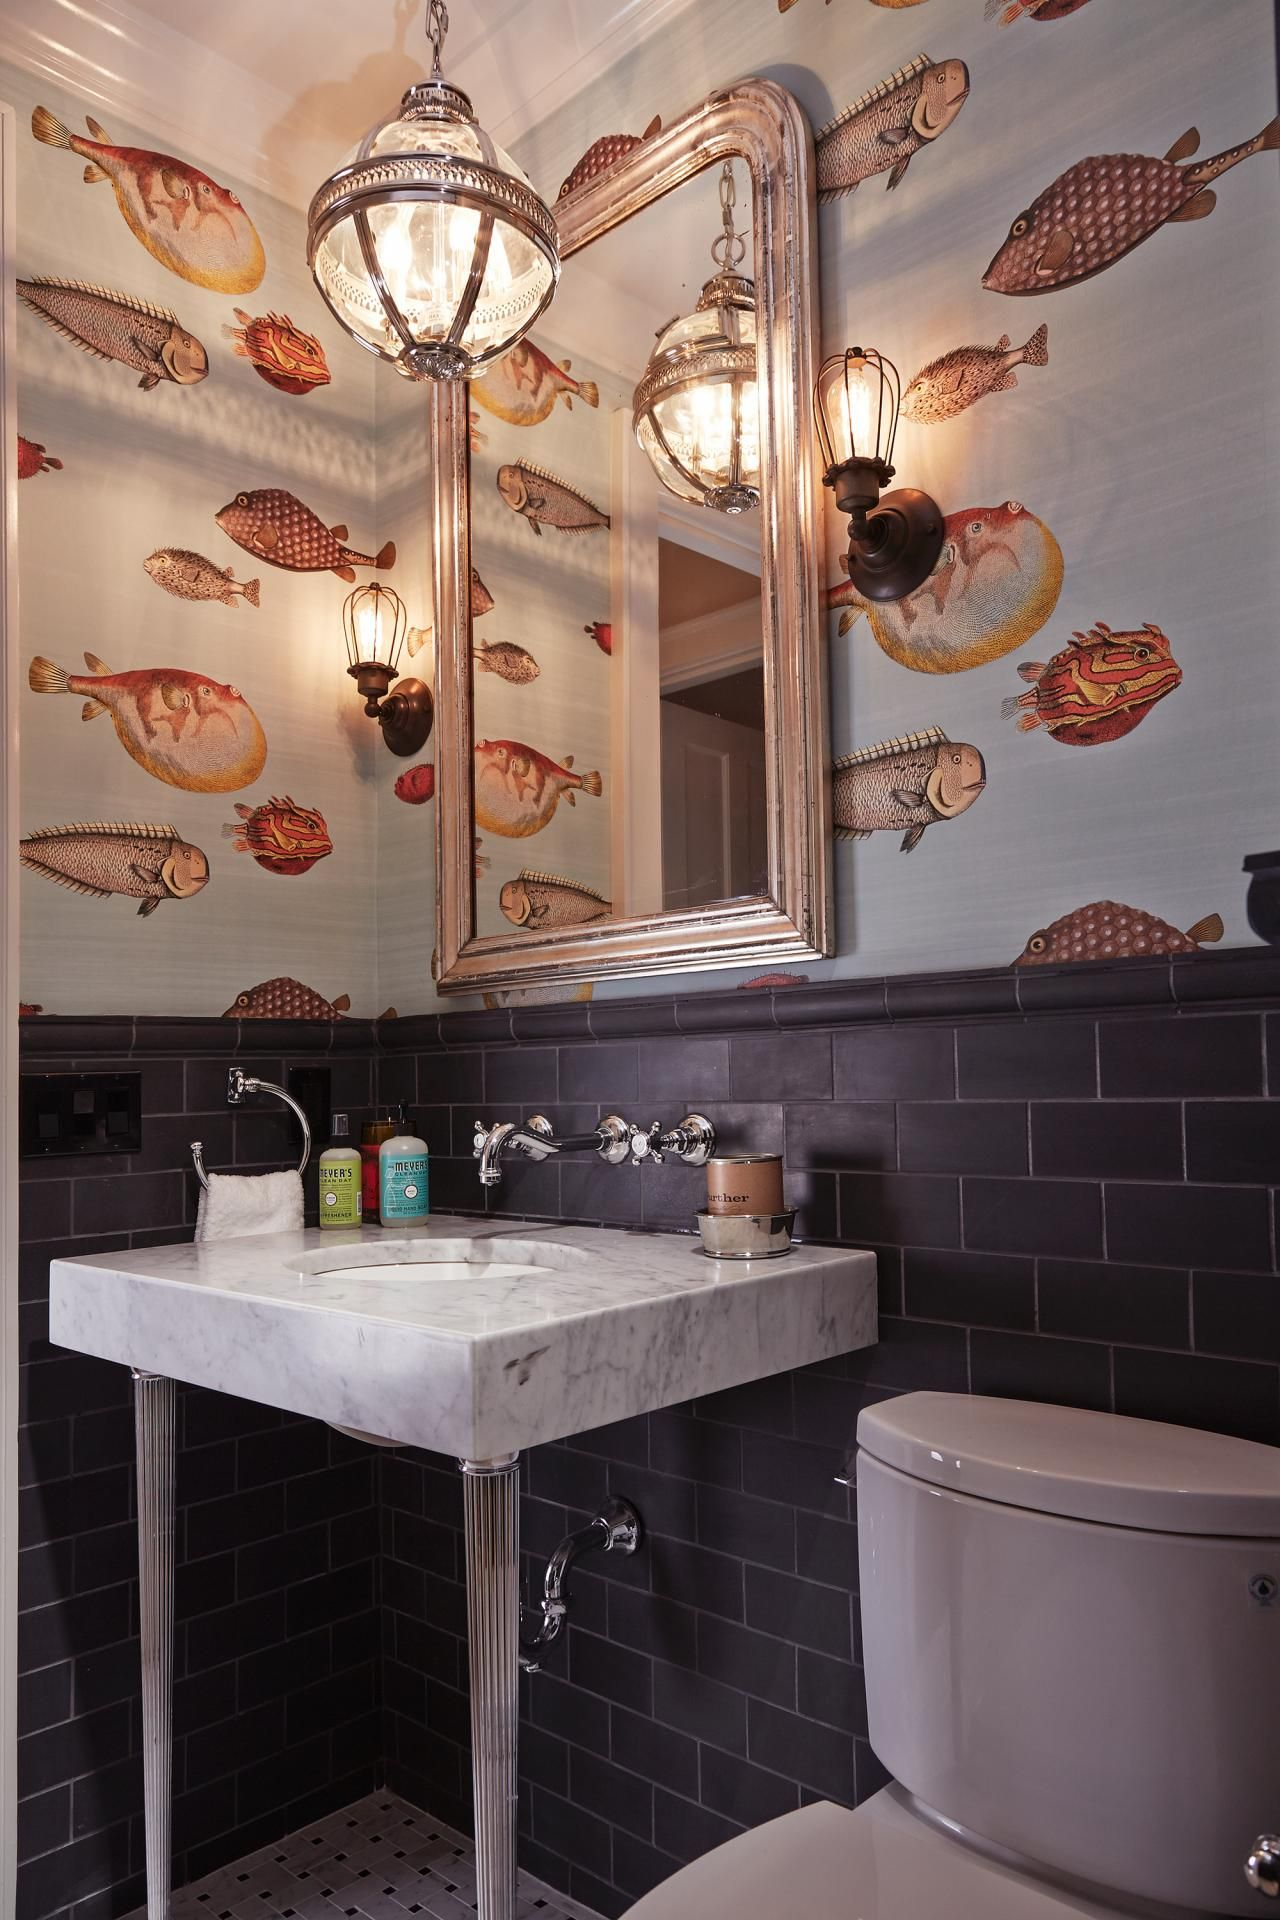 Powder Room With Fish Patterned Wallpaper Guest Bathroom Small Bathroom Wallpaper Natural Bathroom